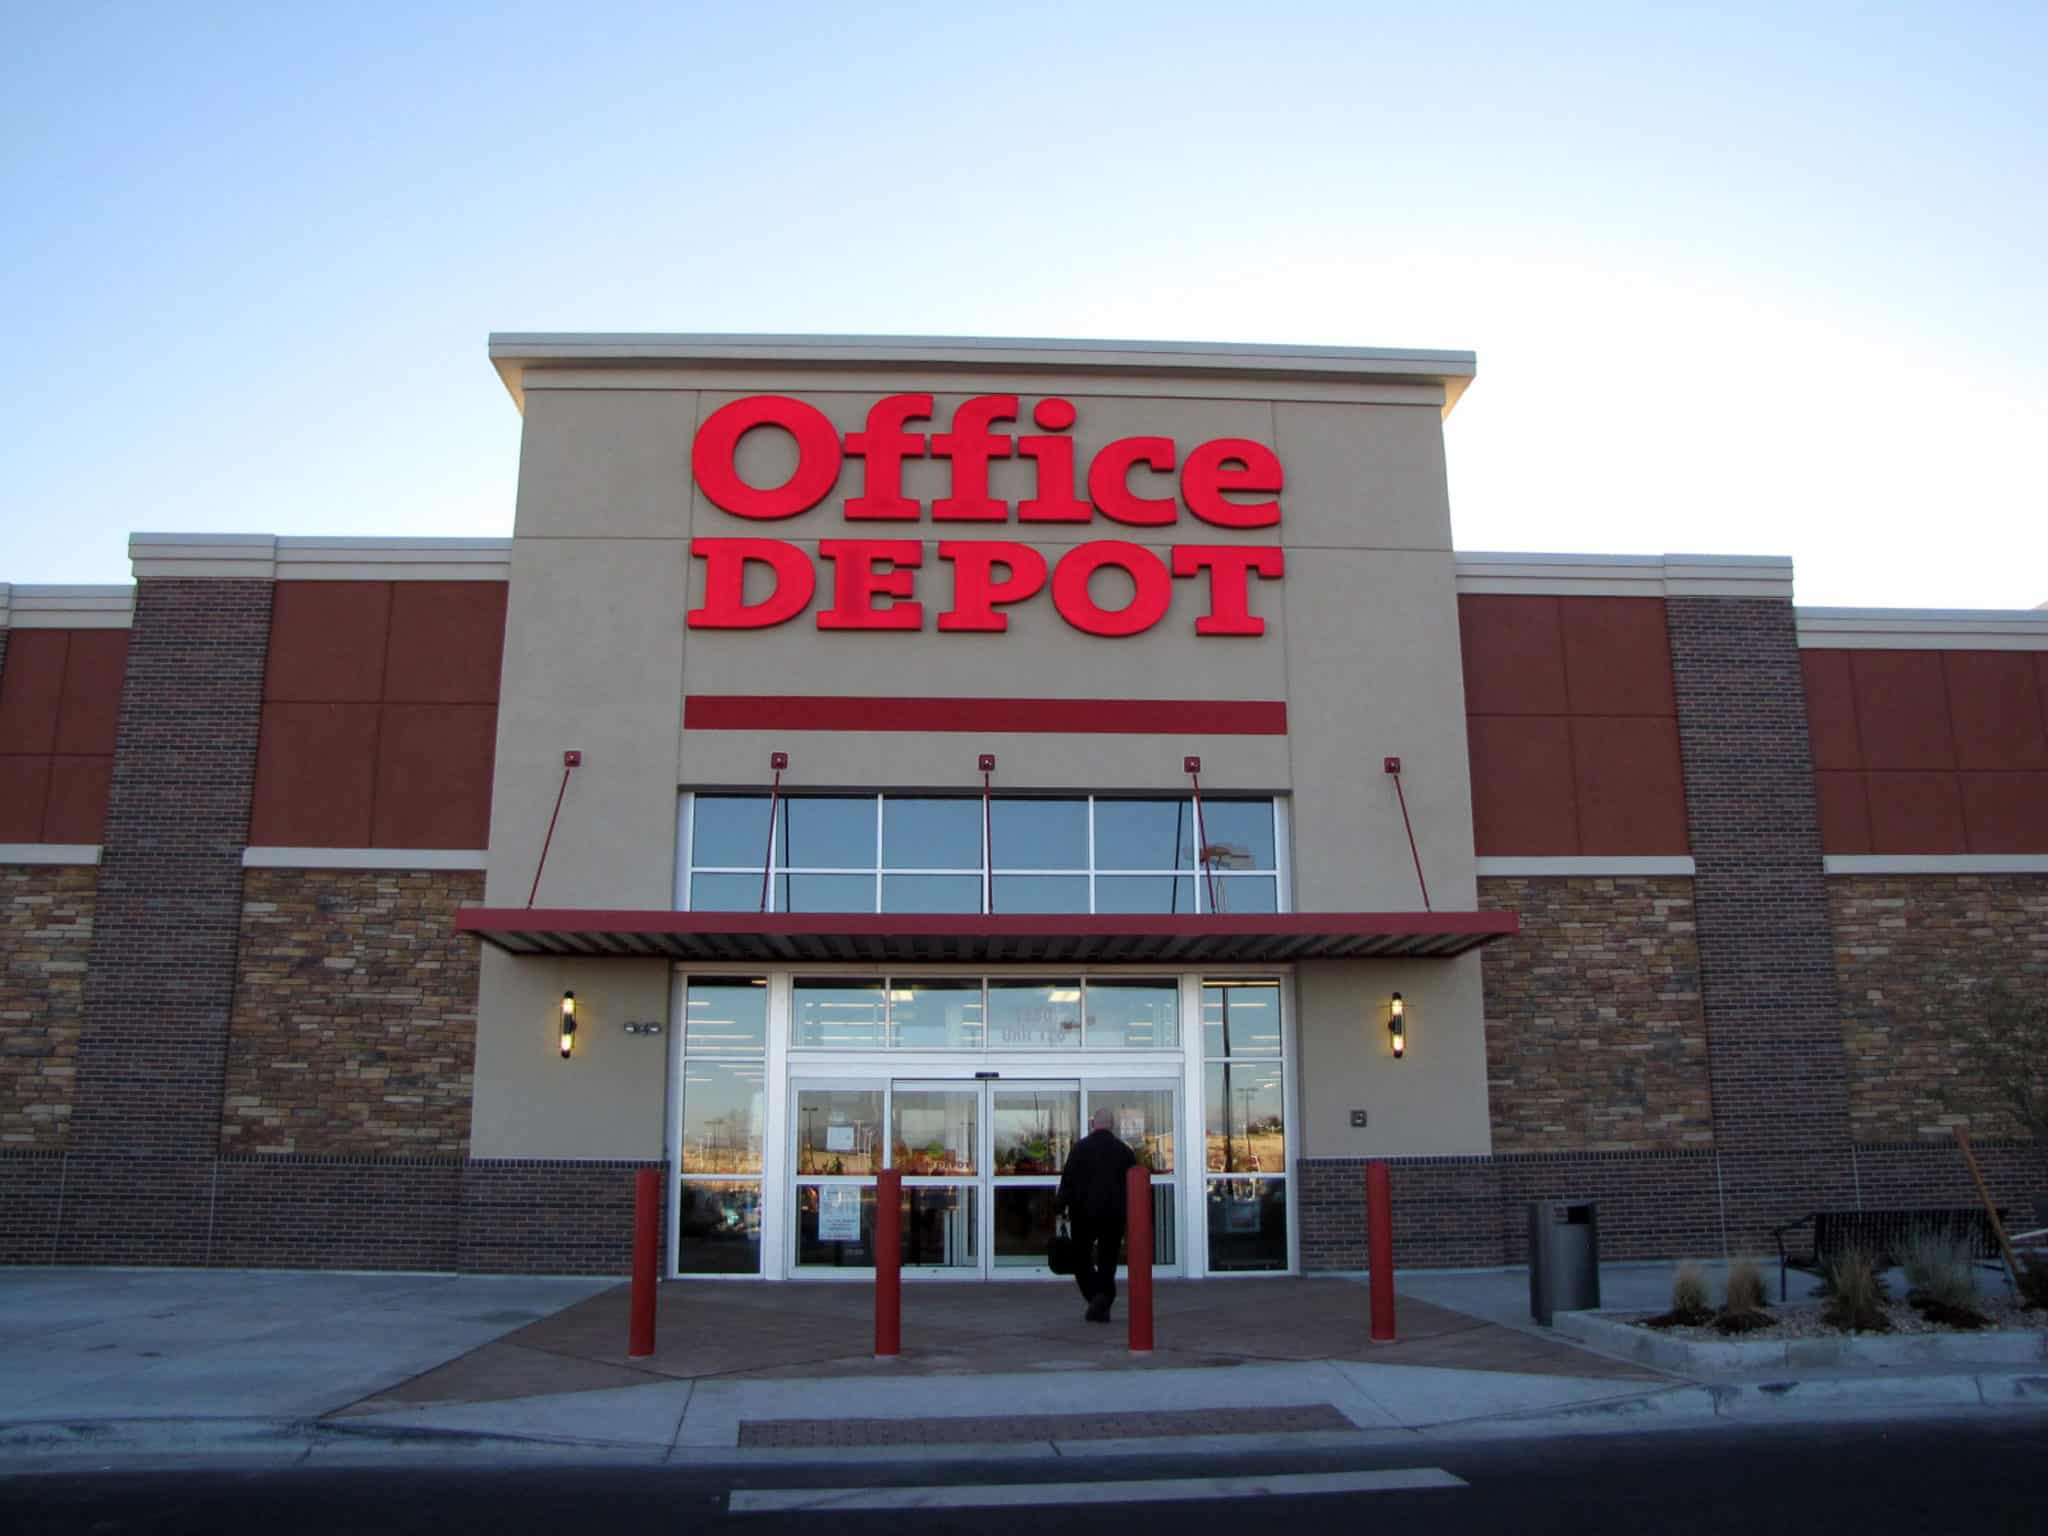 office depot on havana street. Black Bedroom Furniture Sets. Home Design Ideas